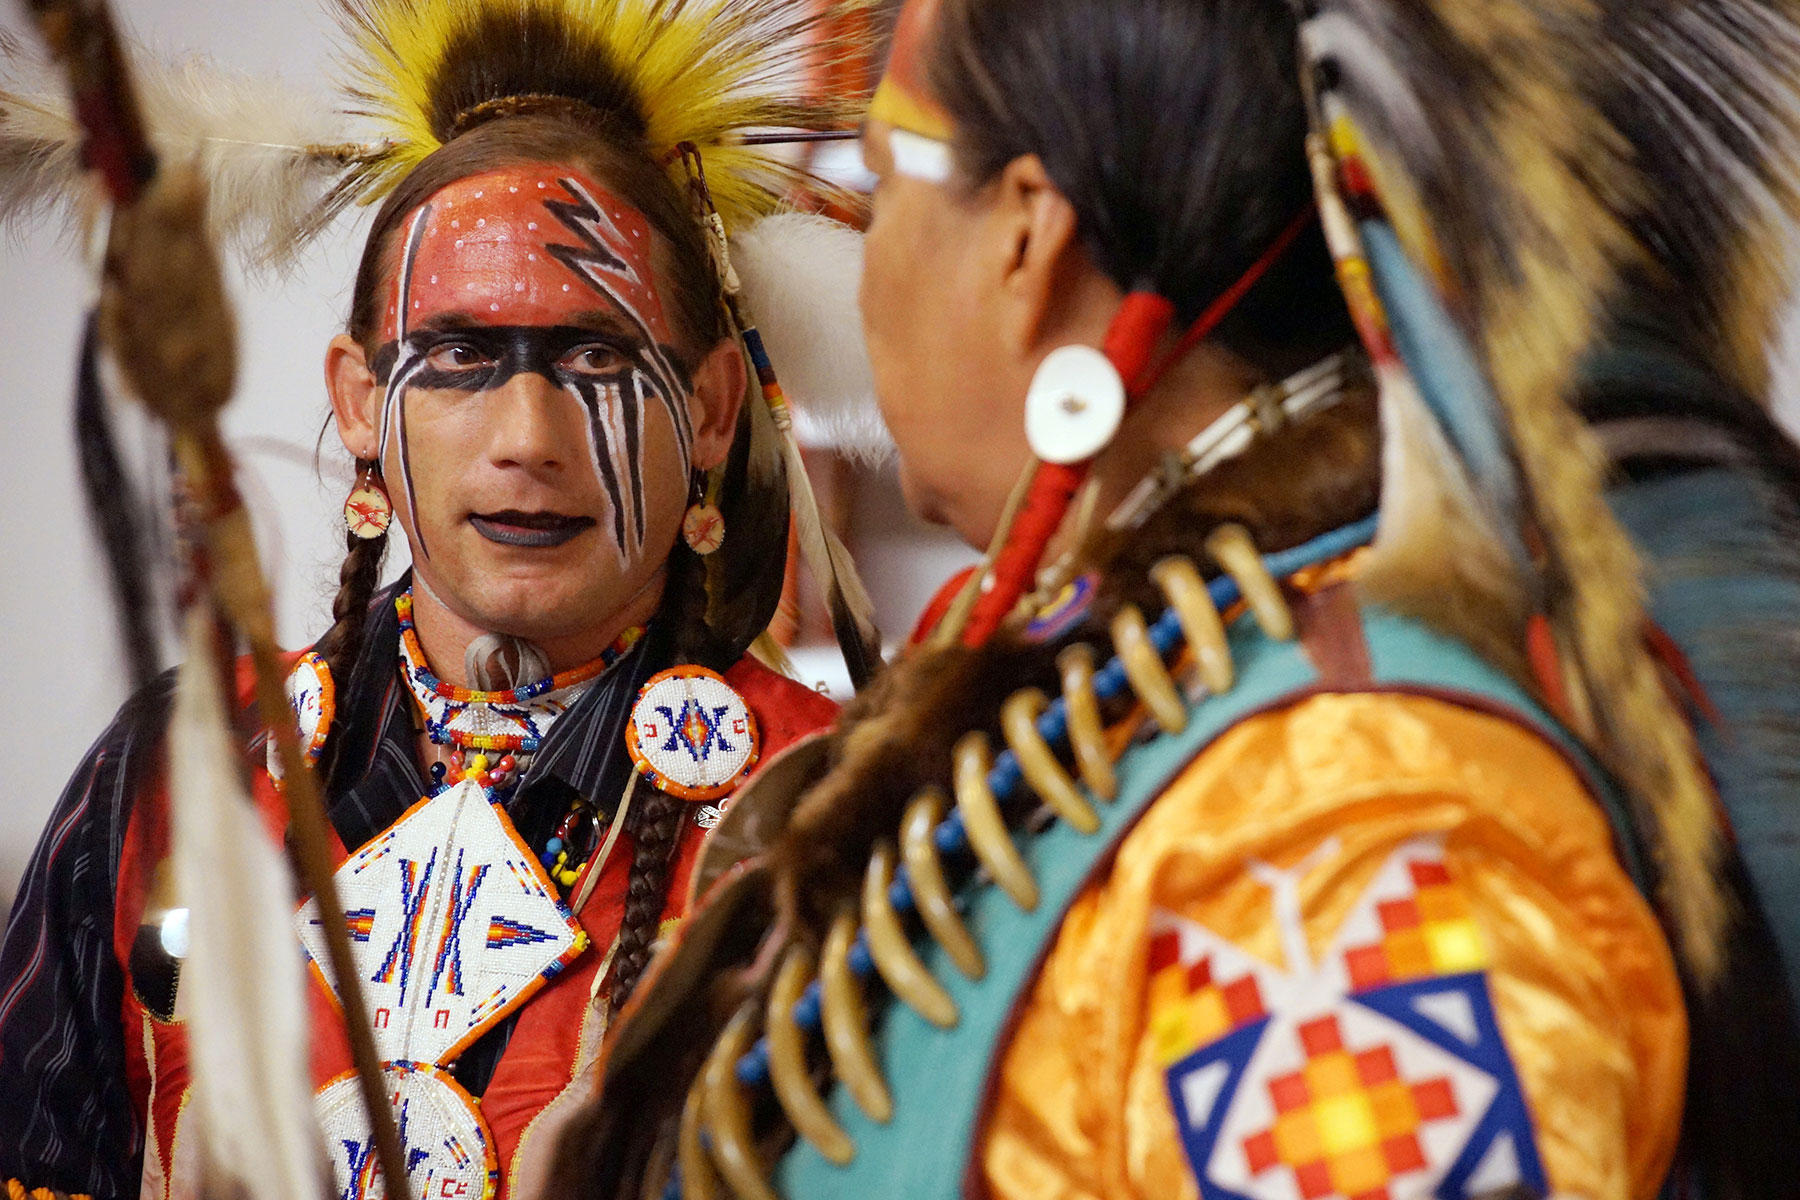 Rob Aptaker: Two Native American Creation Stories